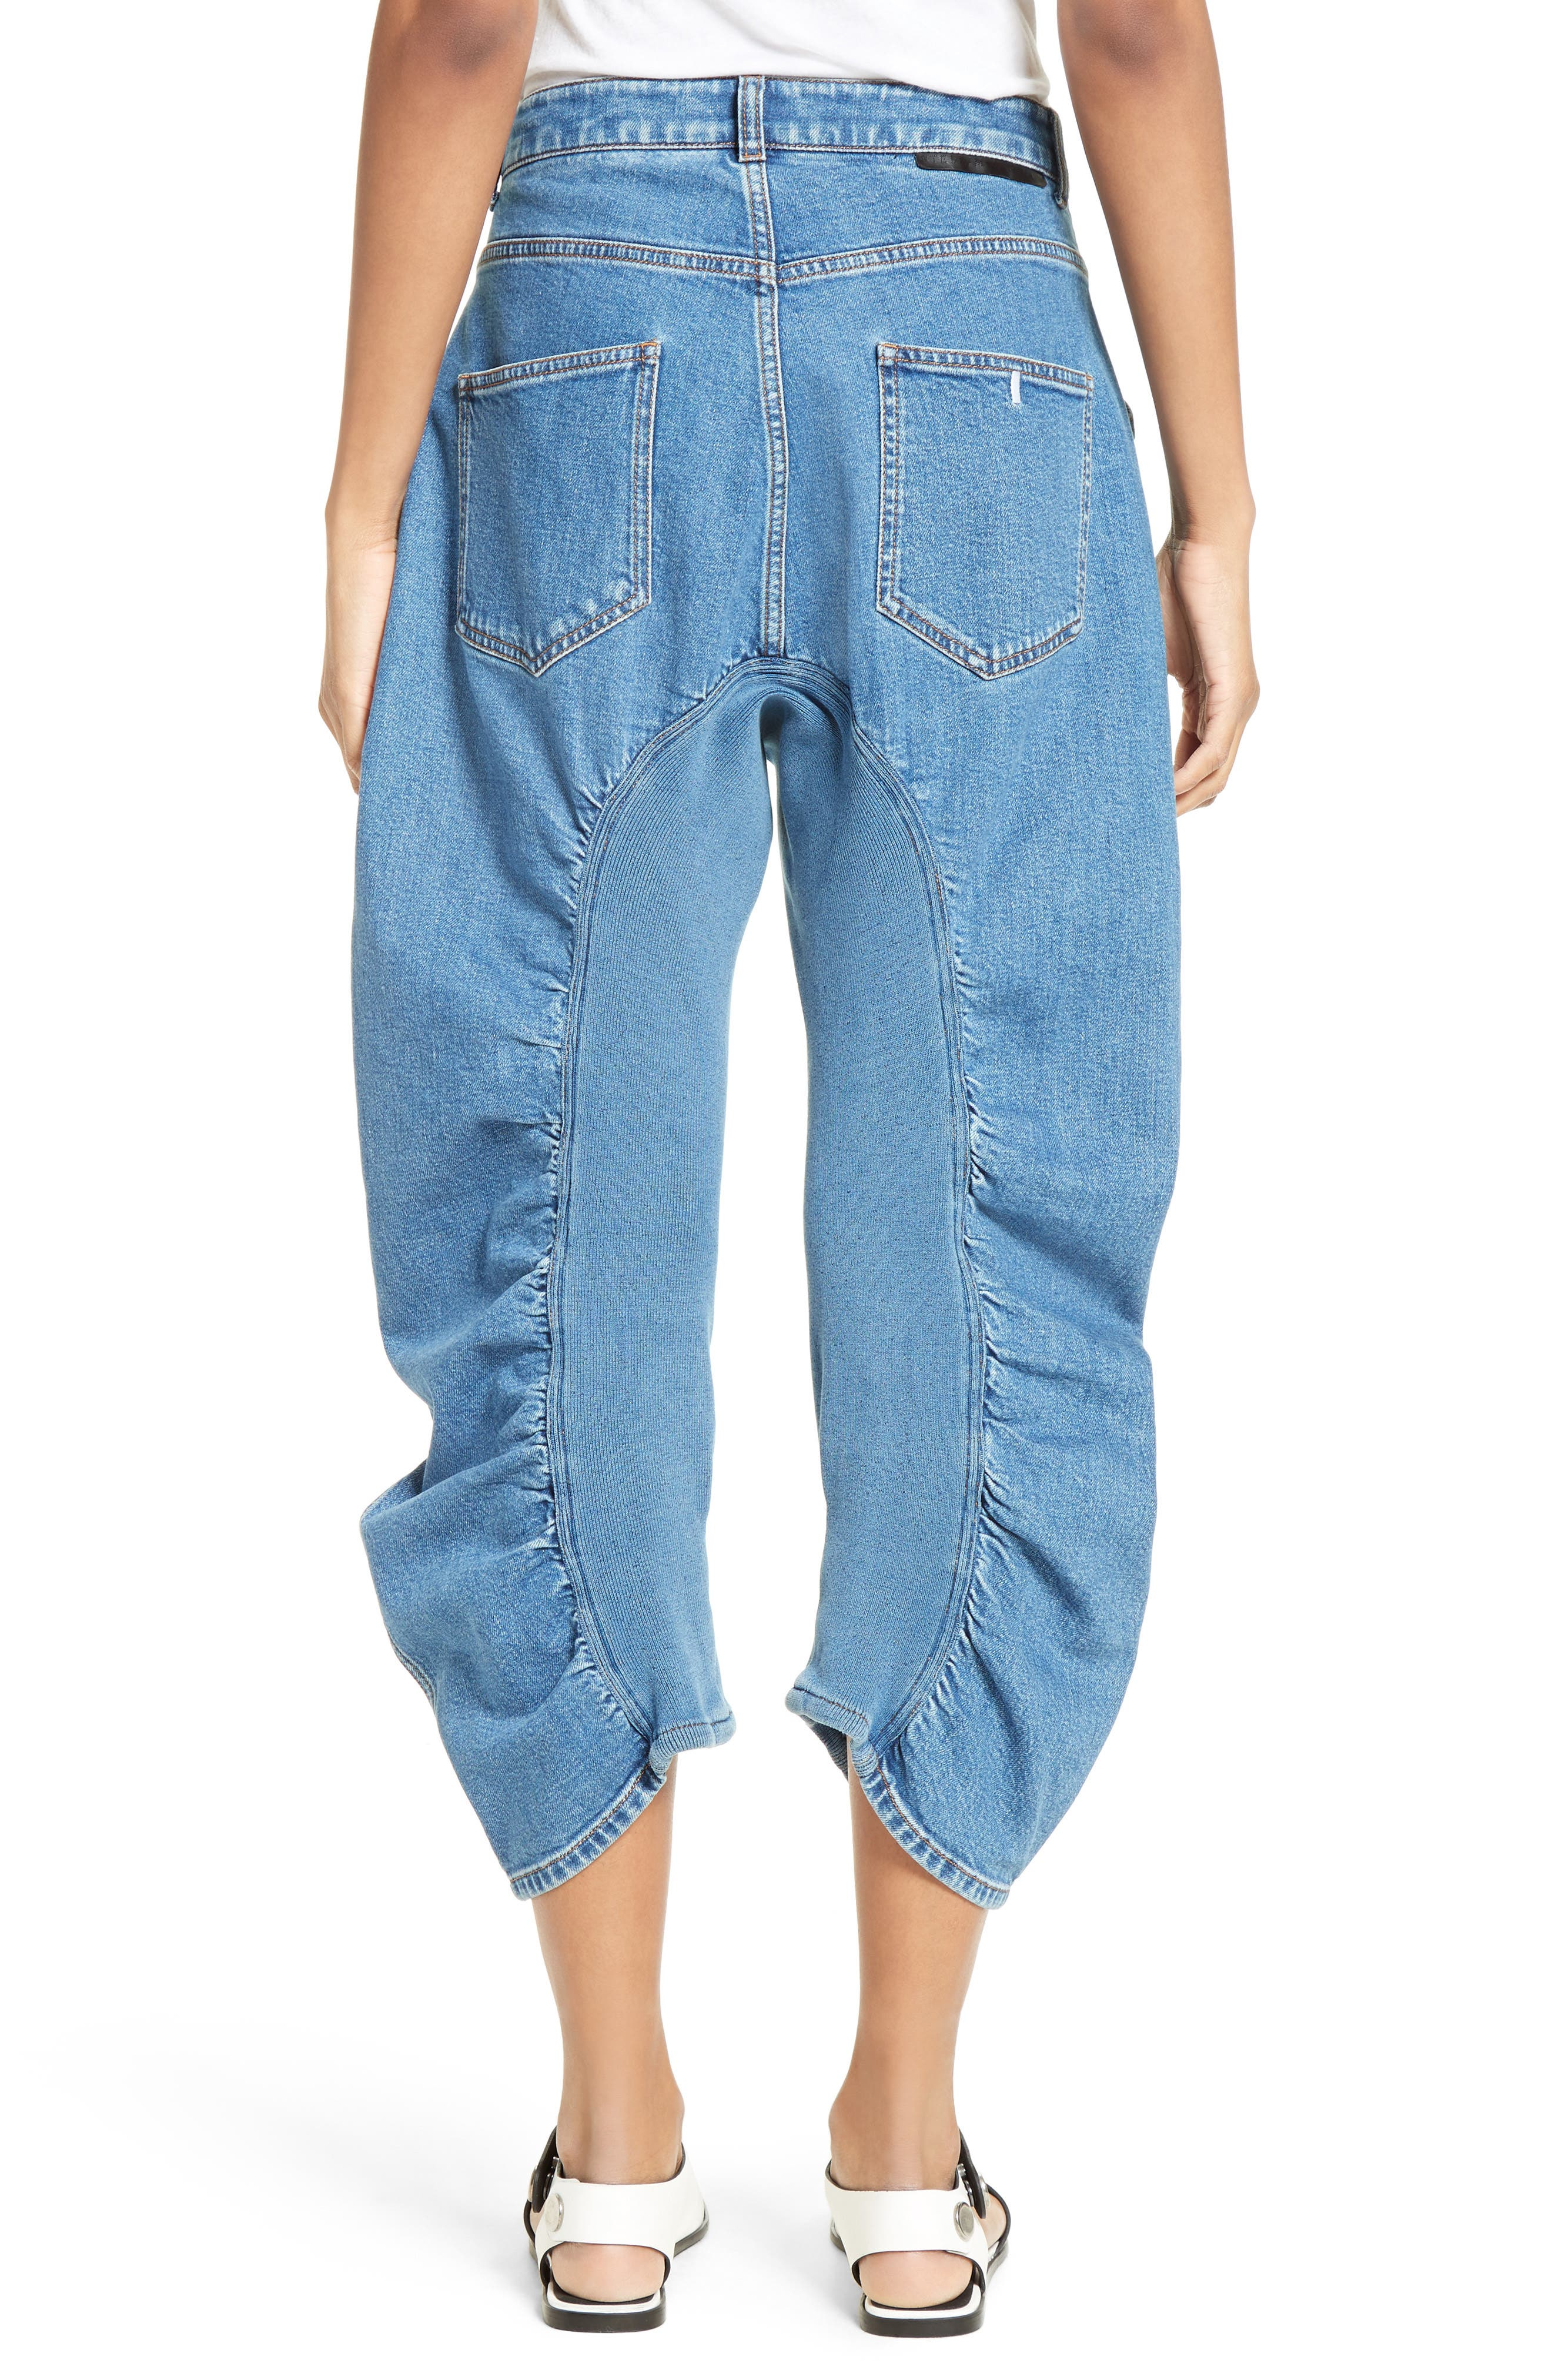 Xenia Ruched Crop Jeans,                             Alternate thumbnail 2, color,                             400